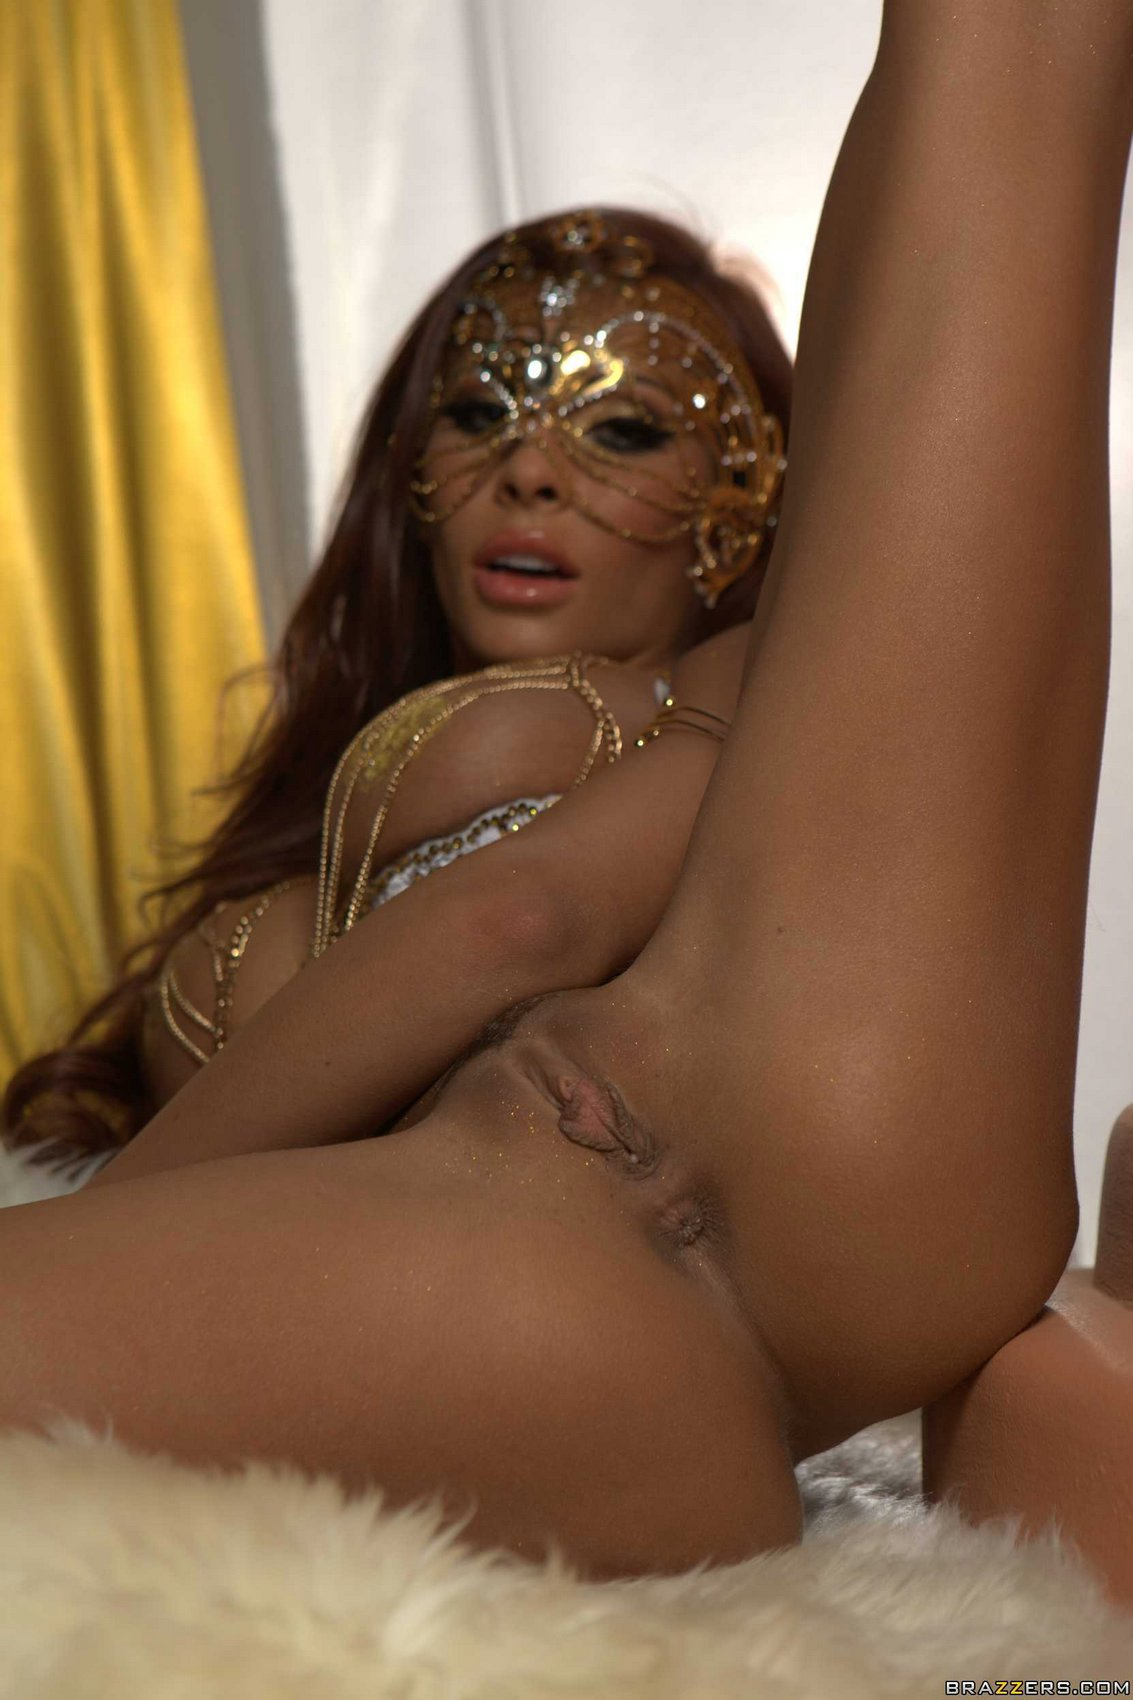 Madison ivy interracial anal right!